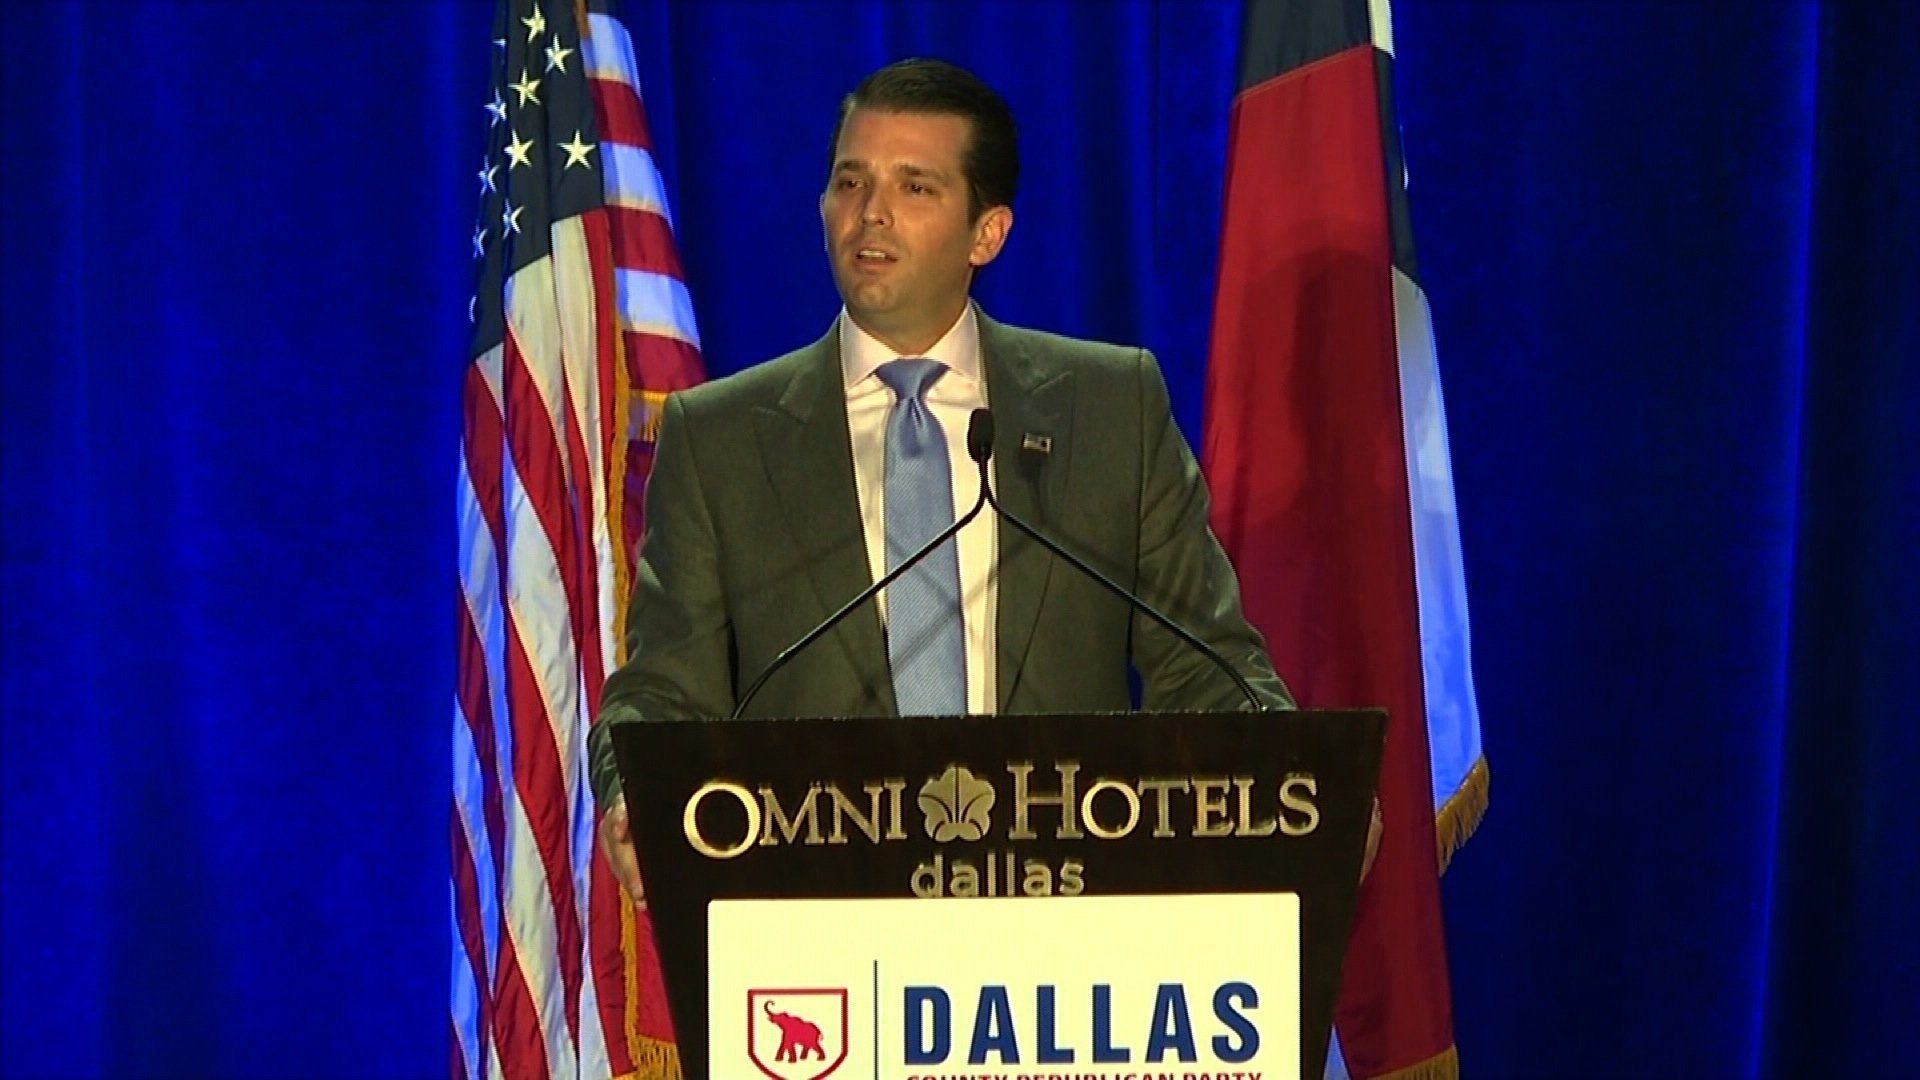 Donald Trump Jr. prepares for stepped up role in 2018 midterm elections